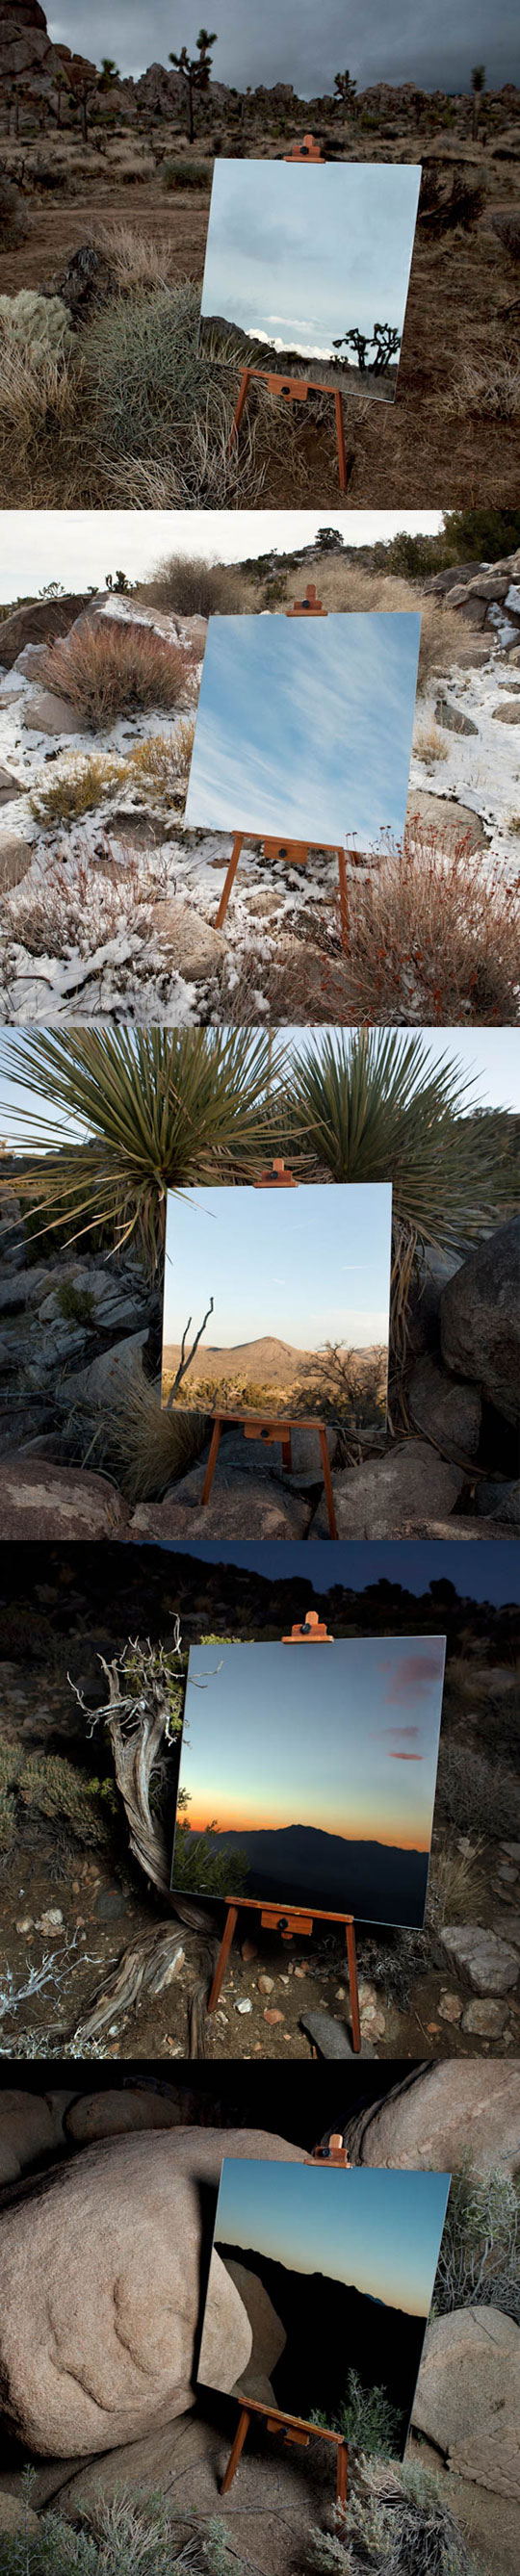 Photos Of Mirrors In The Desert